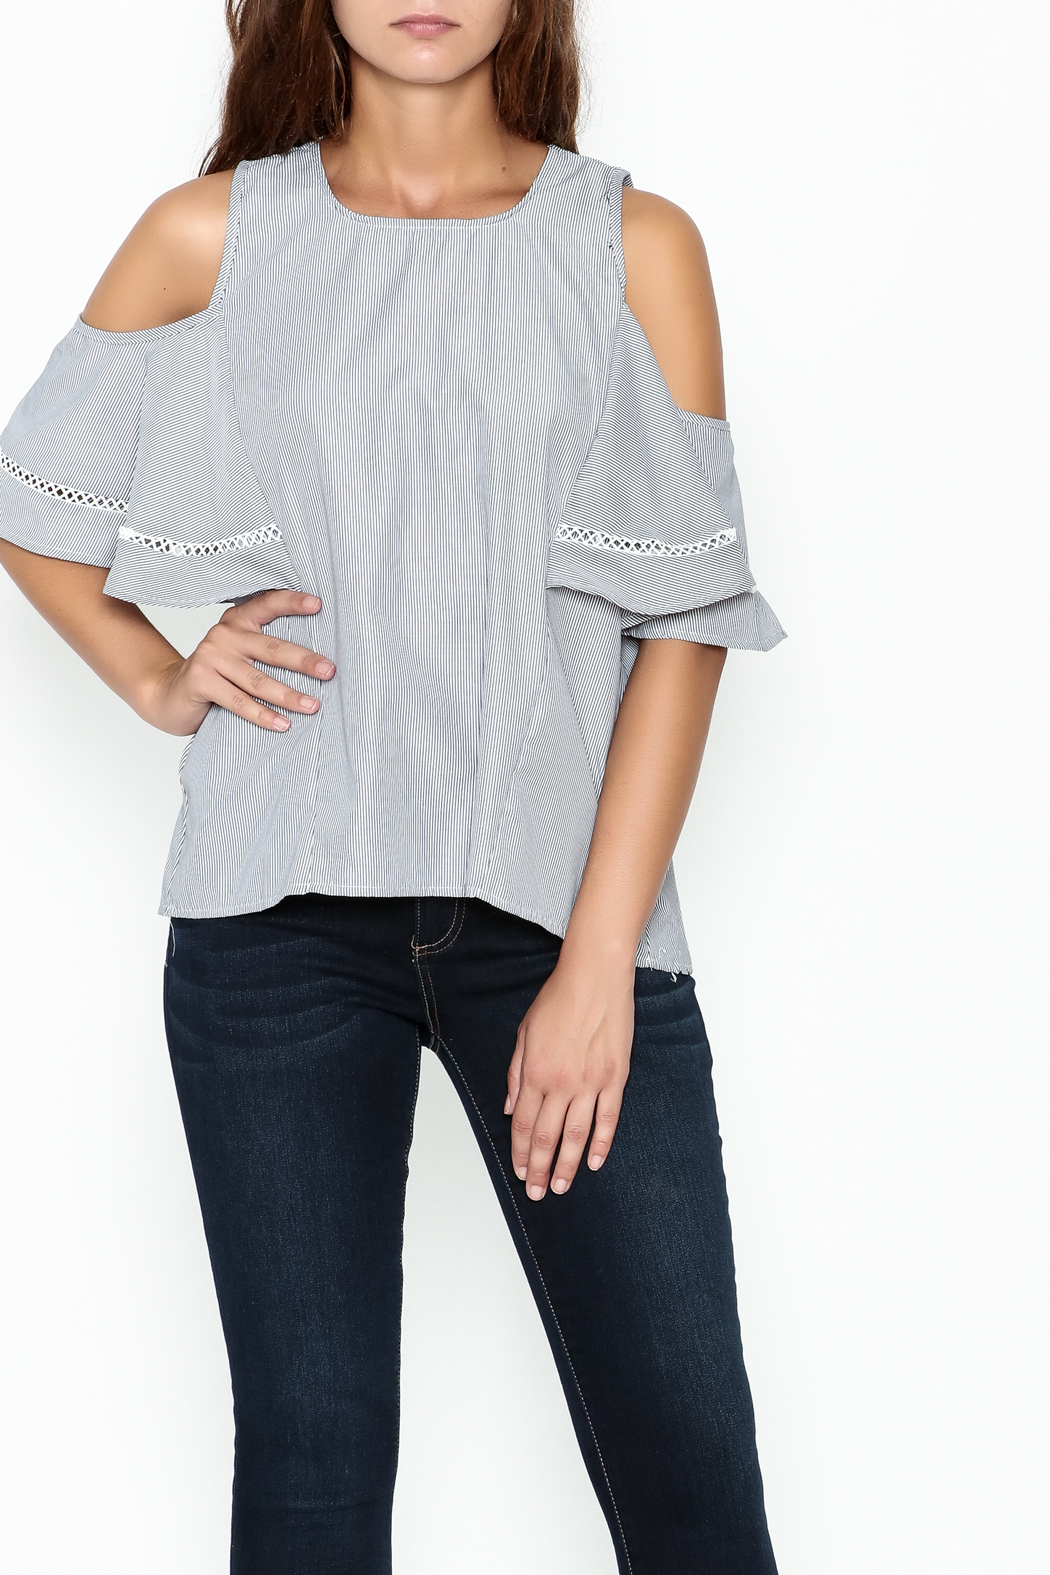 Grace & Emma Grey Cold Shoulder Top - Main Image